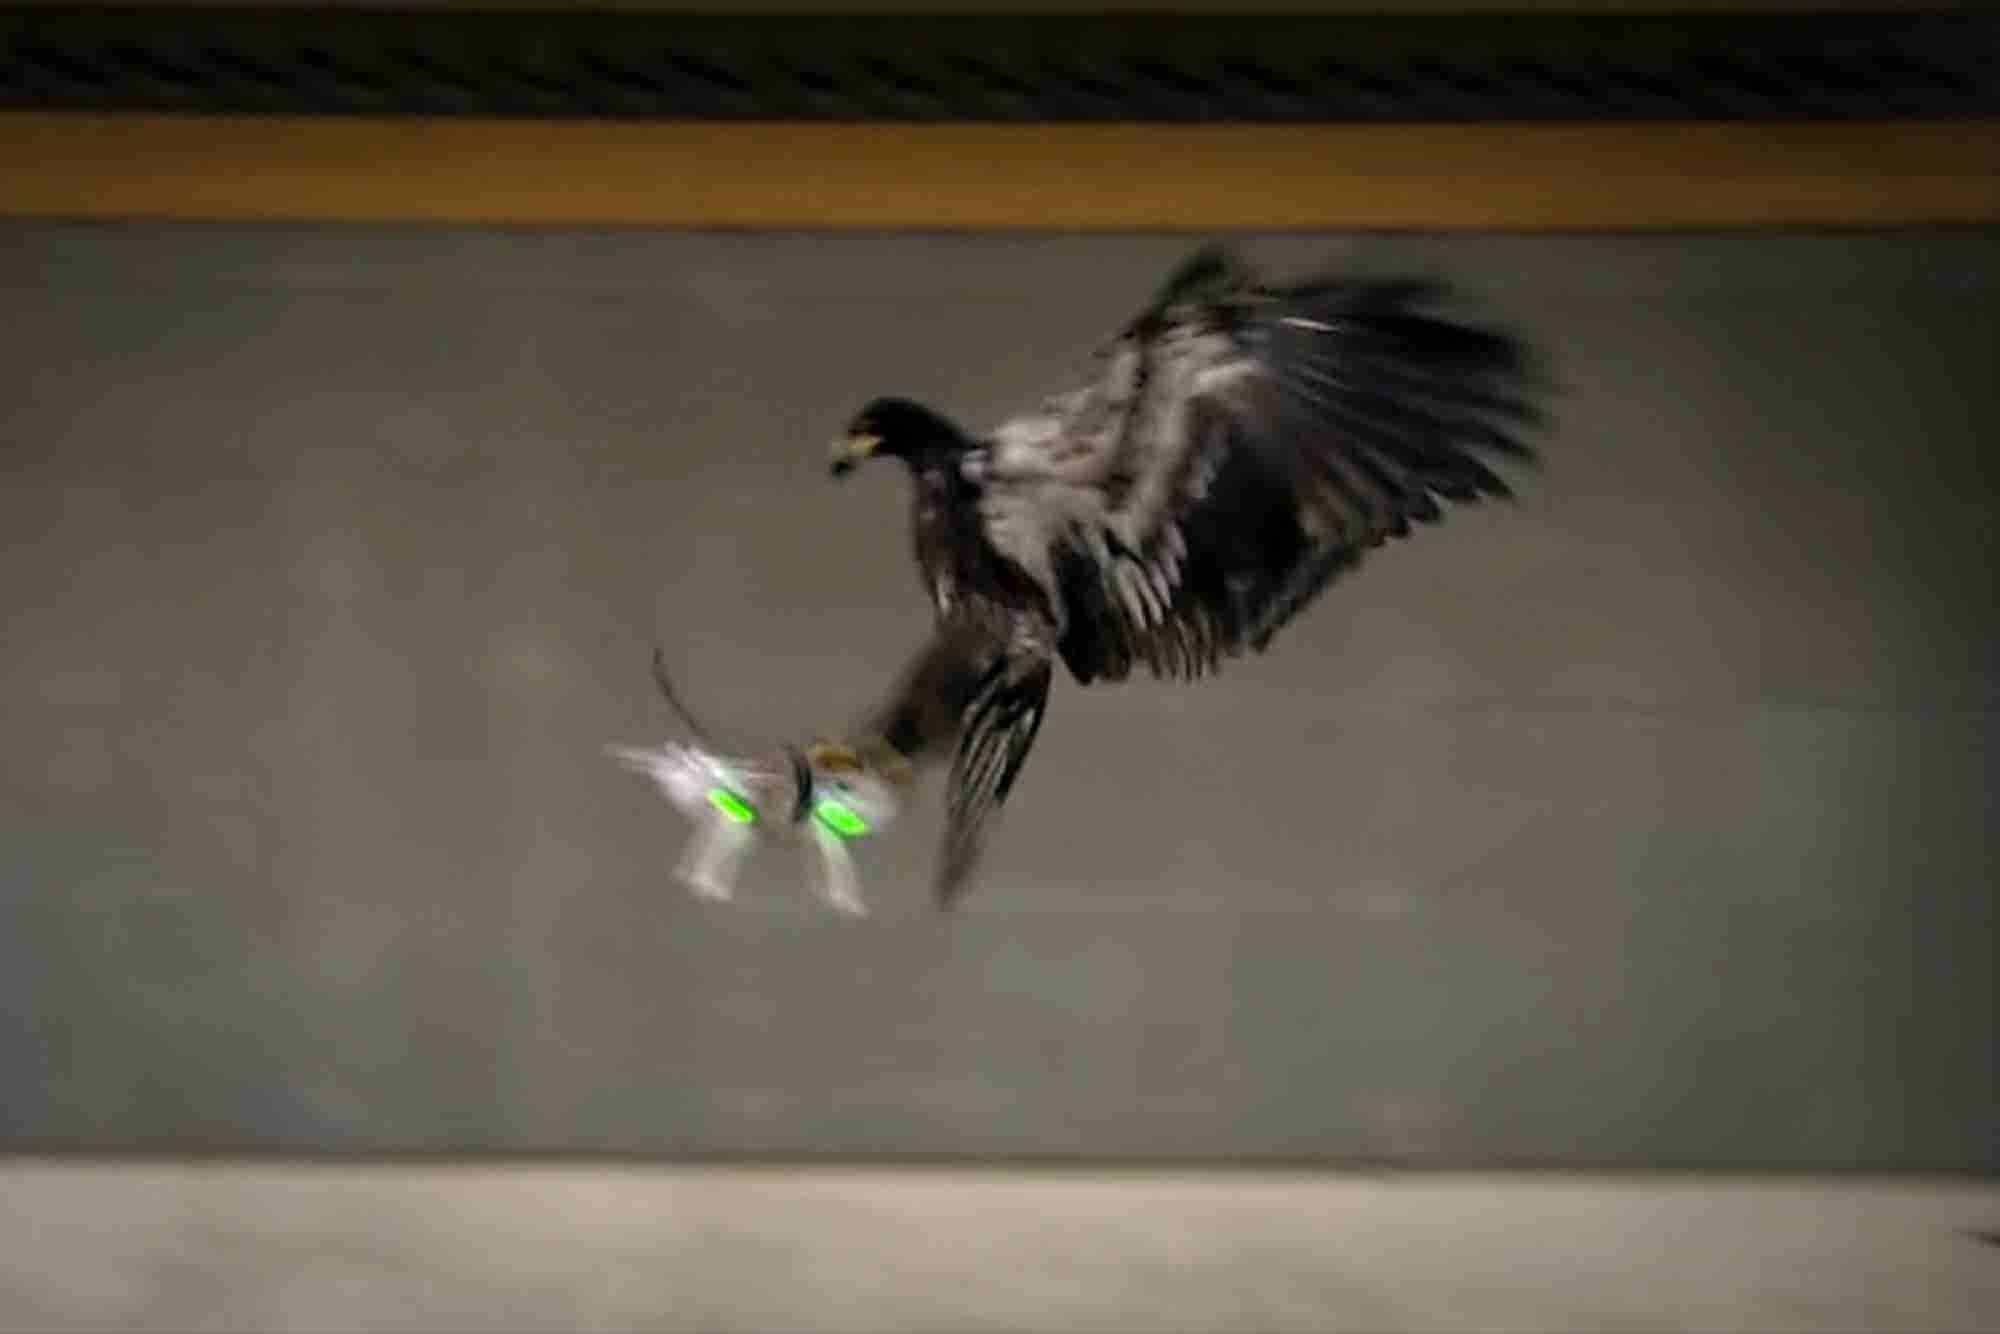 Mighty Eagles Are Being Trained to Snatch Drones From the Sky